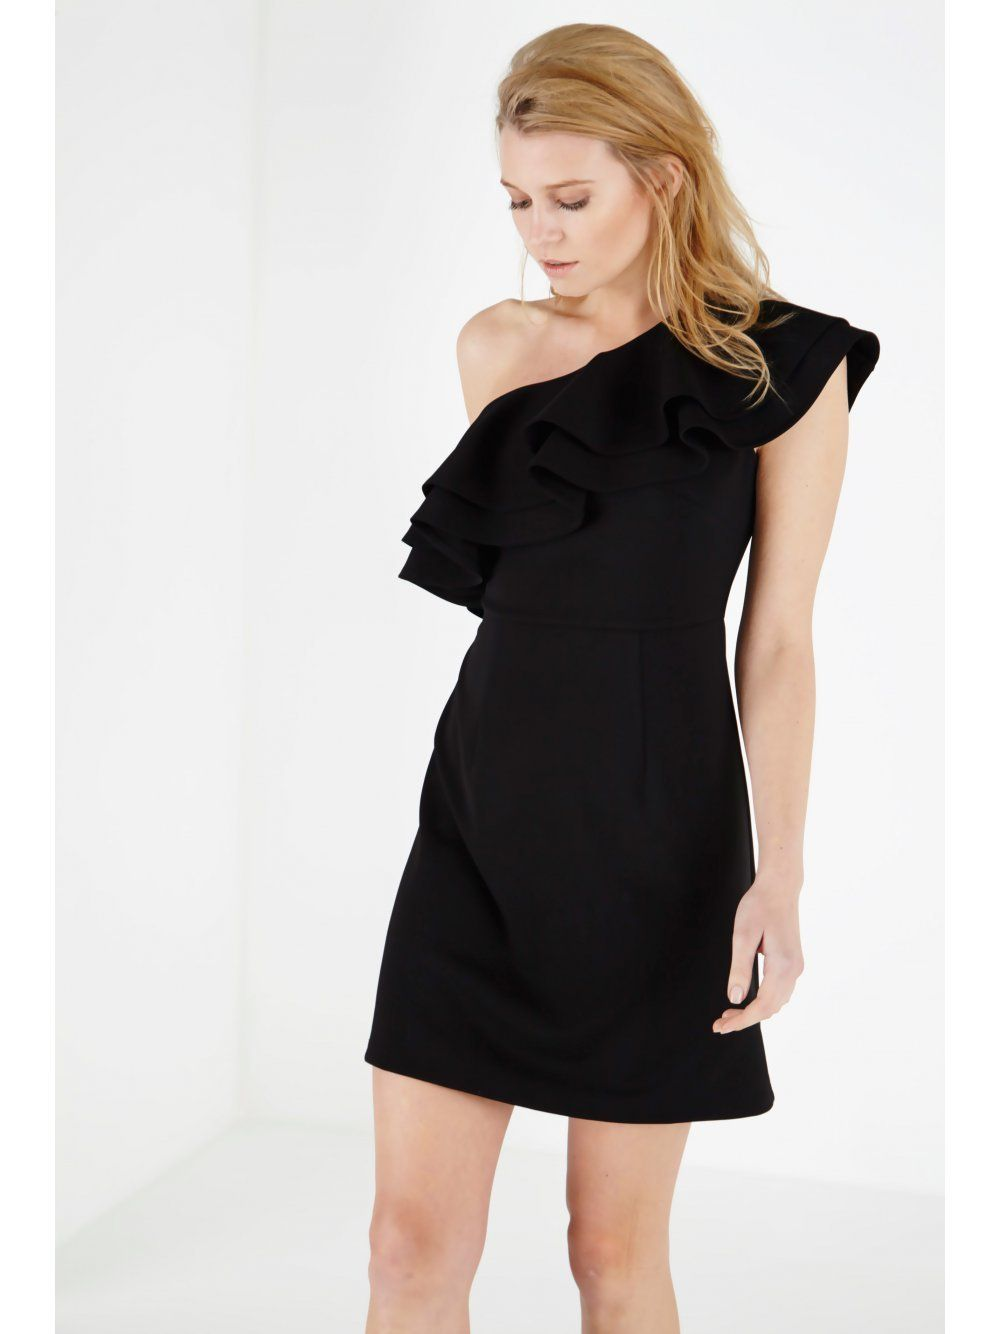 Black Ruffle Shoulder Mini Dress